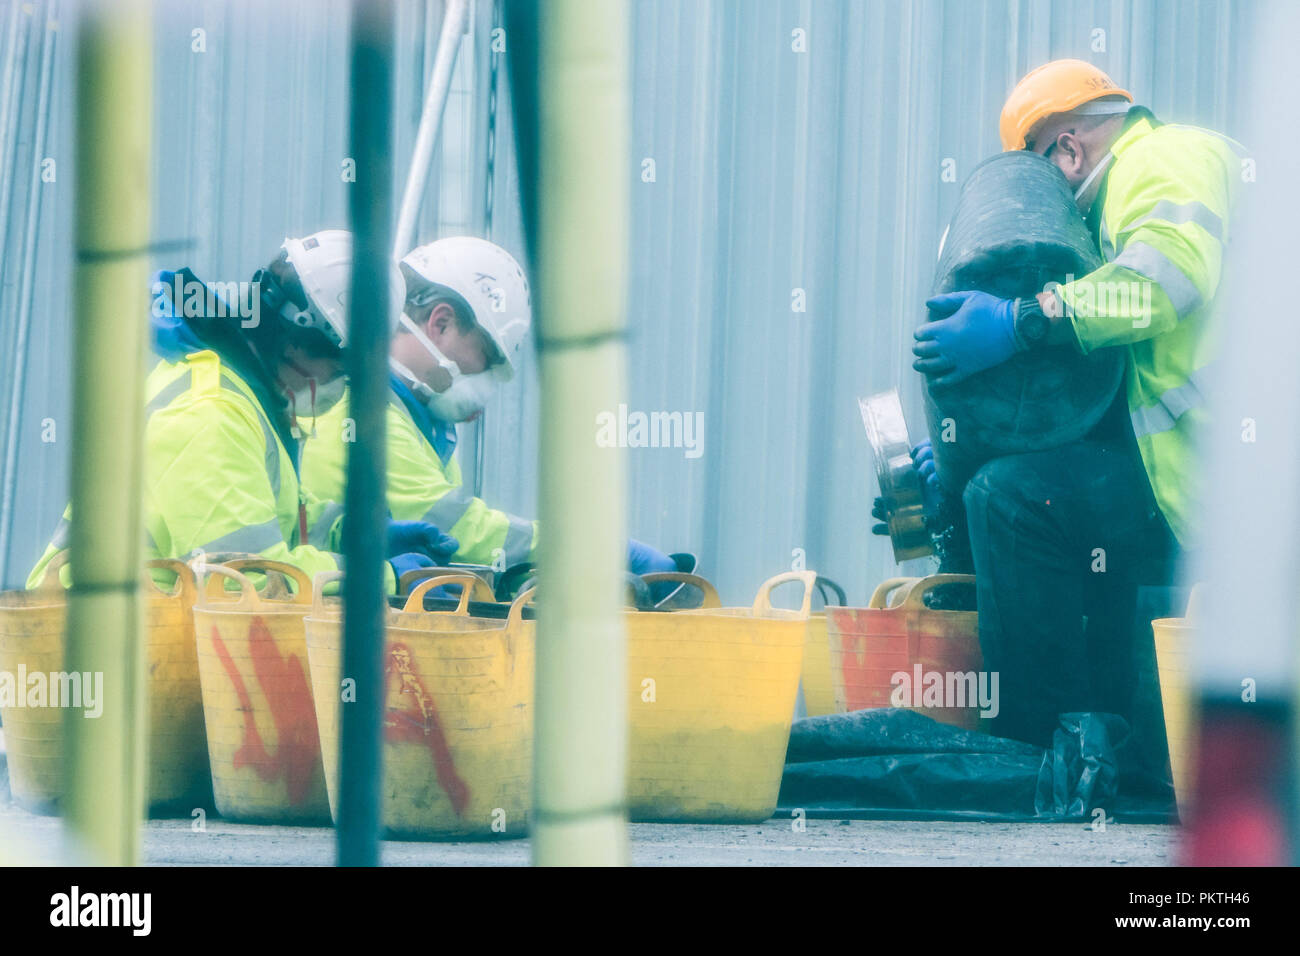 Aberystwyth Wales UK, Saturday 15 September 2018  Police CSI (Crime Scene Investigation) officers sift through buckets of  charred rubble looking for forensic evidence after the discovery of human remains in the ruins  of the Ty Belgrave House hotel that was totally destroyed in a devastating fire on 25th July 2018,   30-year-old Damion Harris has been  remanded in custody at Swansea Crown Court charged with arson with intent to endanger life.   photo © Keith Morris / Alamy Live News - Stock Image